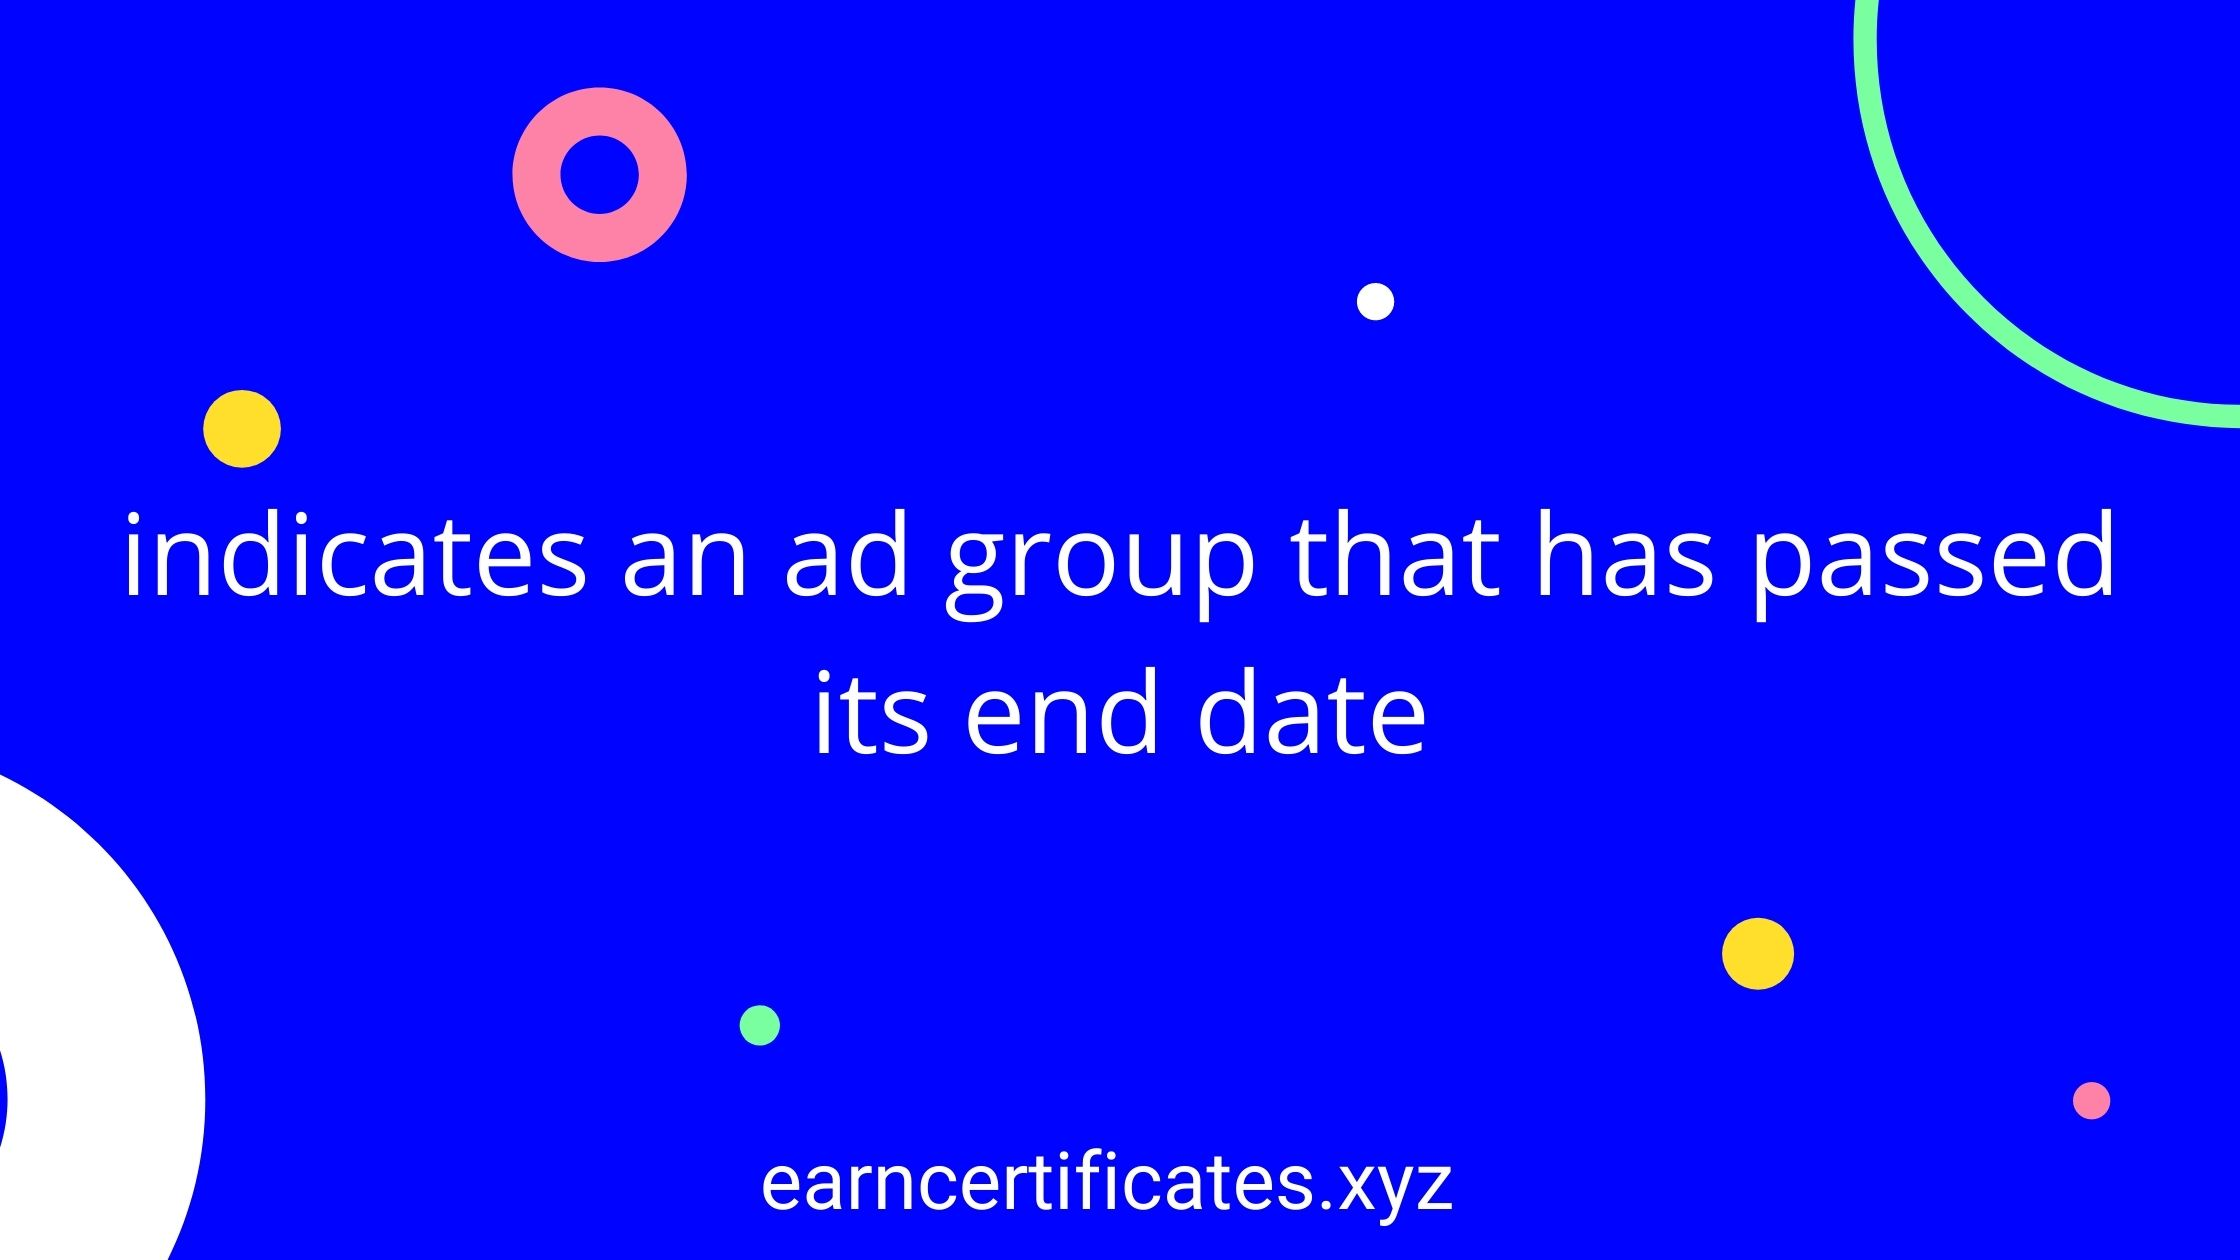 Which Delivery status indicates an ad group that has passed its end date?